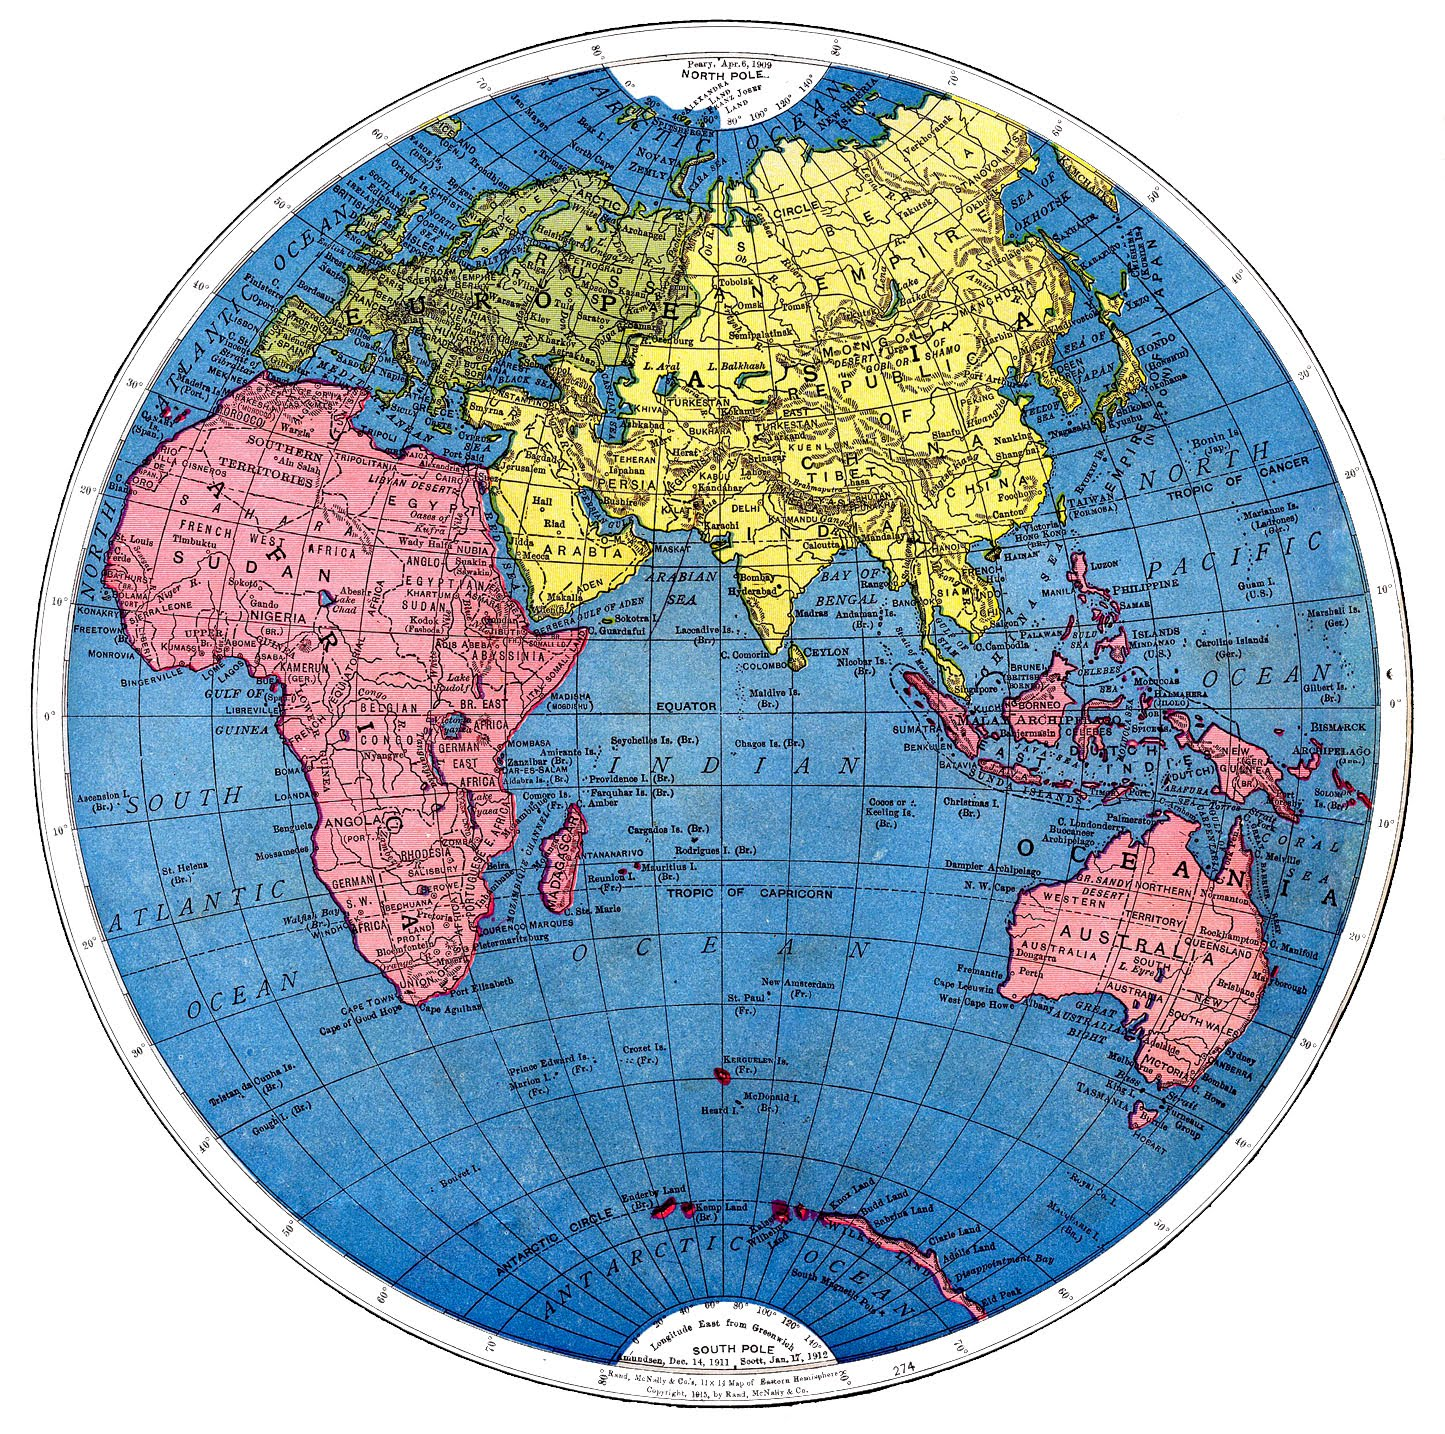 photograph regarding Printable World Map named Classic Printable - Map of the Planet - Section 2 - The Graphics